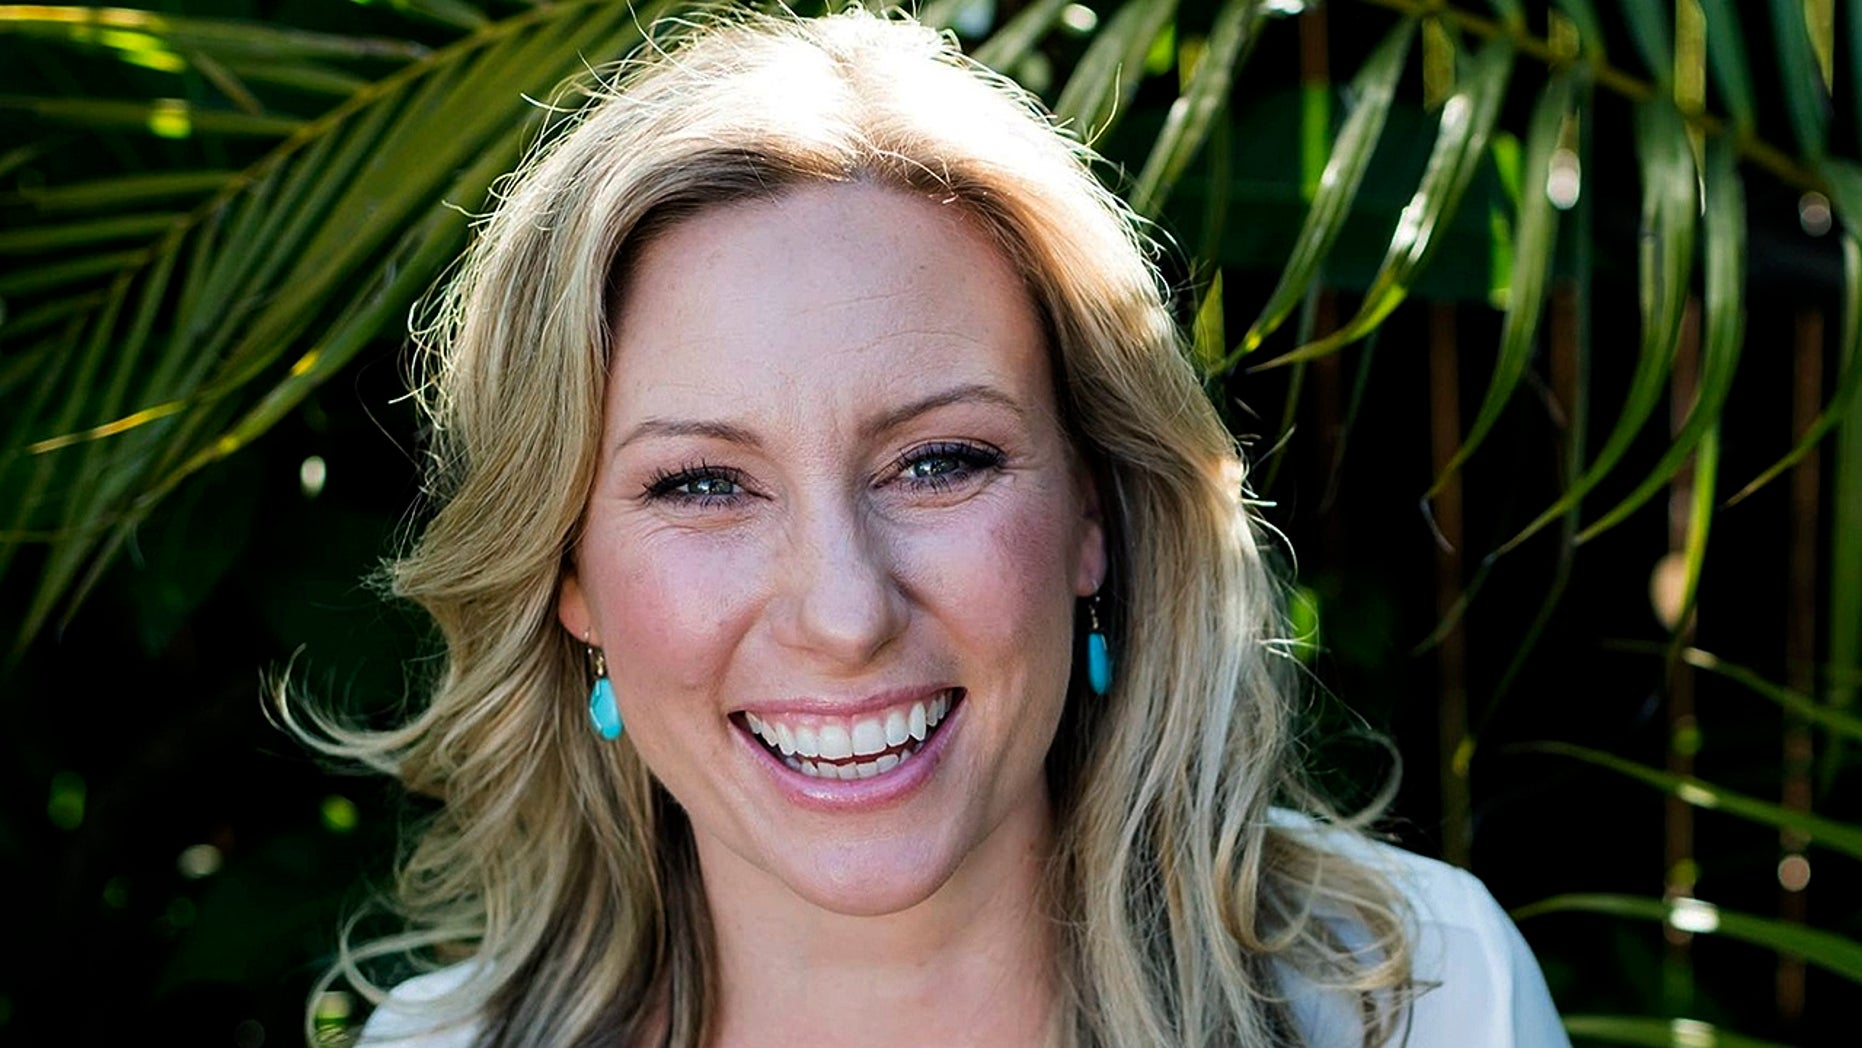 Minneapolis police removed a memorial put up by white nationalists in honor of Justine Ruszczyk Damond, an Australian woman who was killed by a police officer earlier this year.